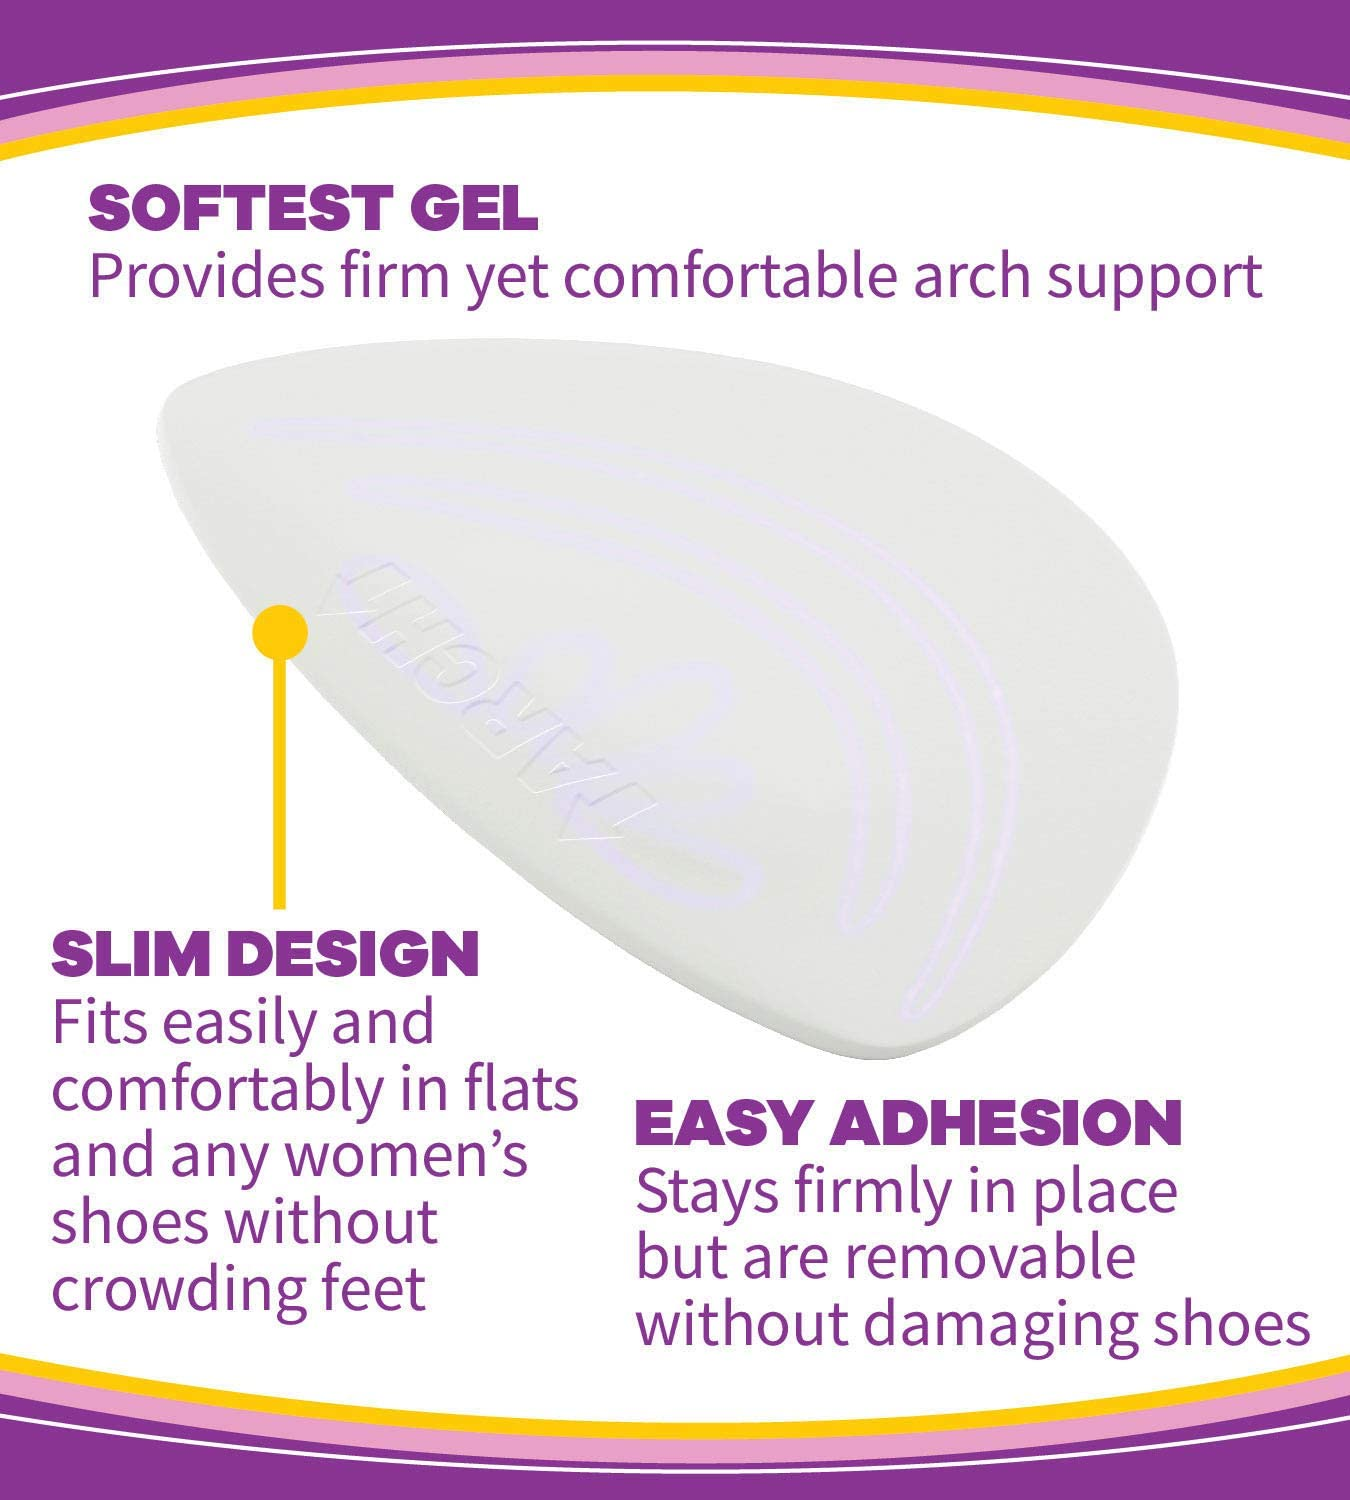 Weak Dr Scholls Hidden Arch Supports for Flats //// Discreet Supports with Soft Gel Comfortably Support Arches to Prevent Arch Pain Often Associated with Flat One Size Fallen or High Arches